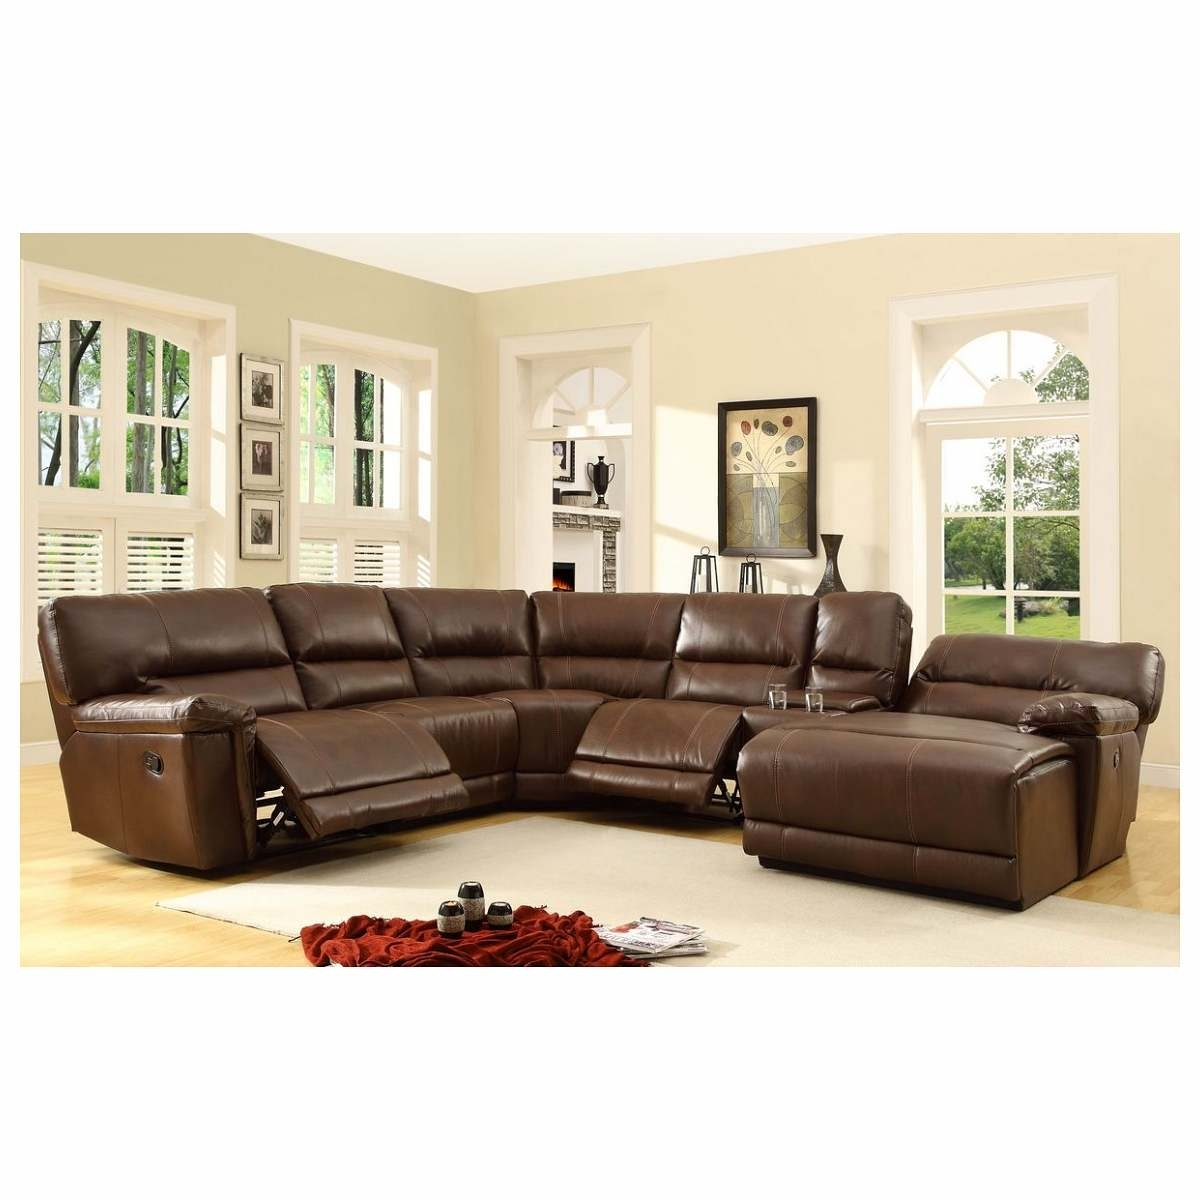 6 Pc Blythe Collection Brown Bonded Leather Match Upholstered pertaining to 6 Piece Leather Sectional Sofas